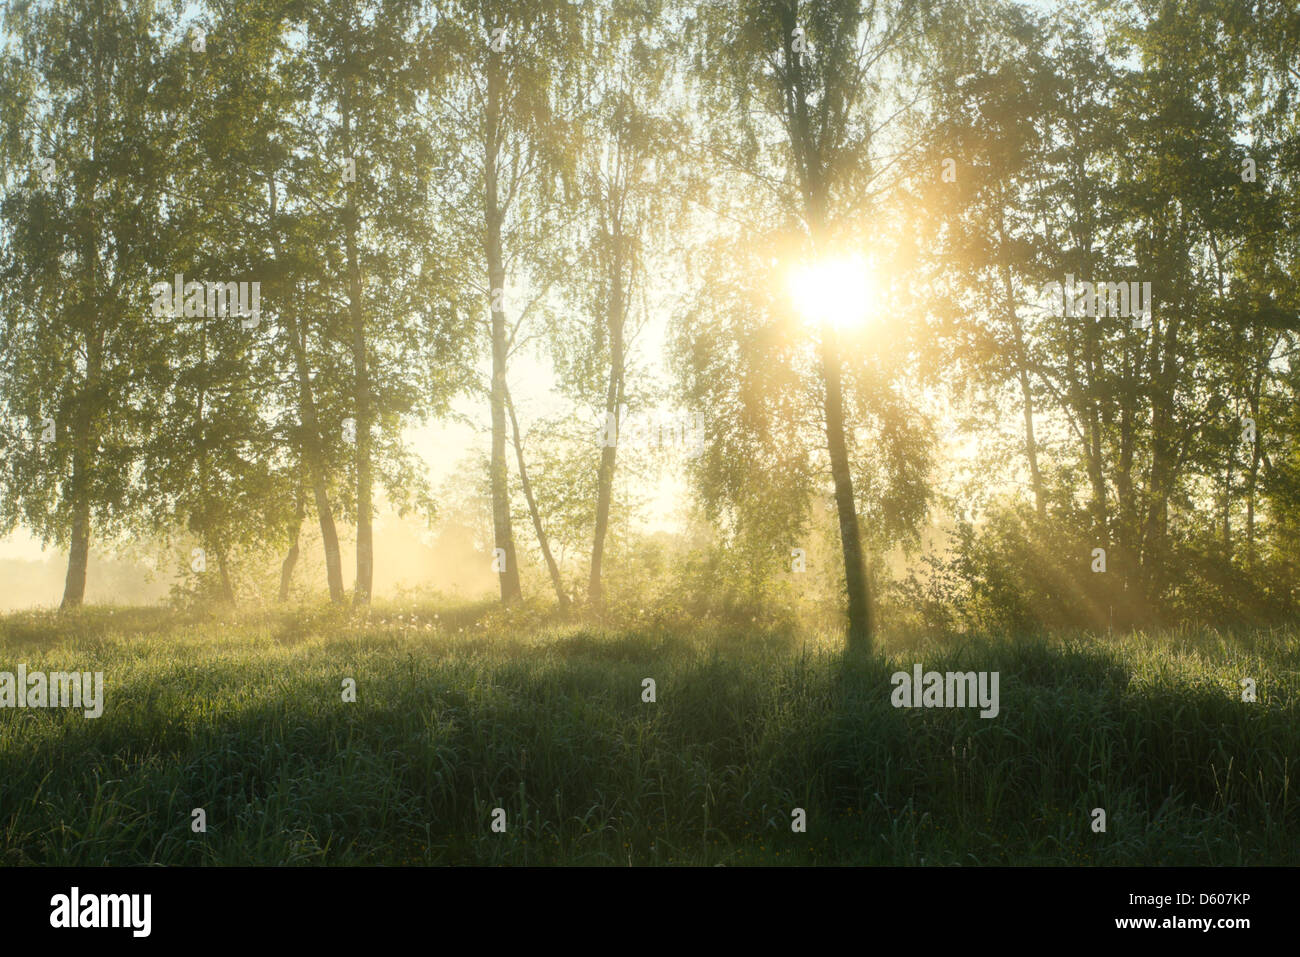 Sun is shining through the trees and fog in early morning. Europe - Stock Image